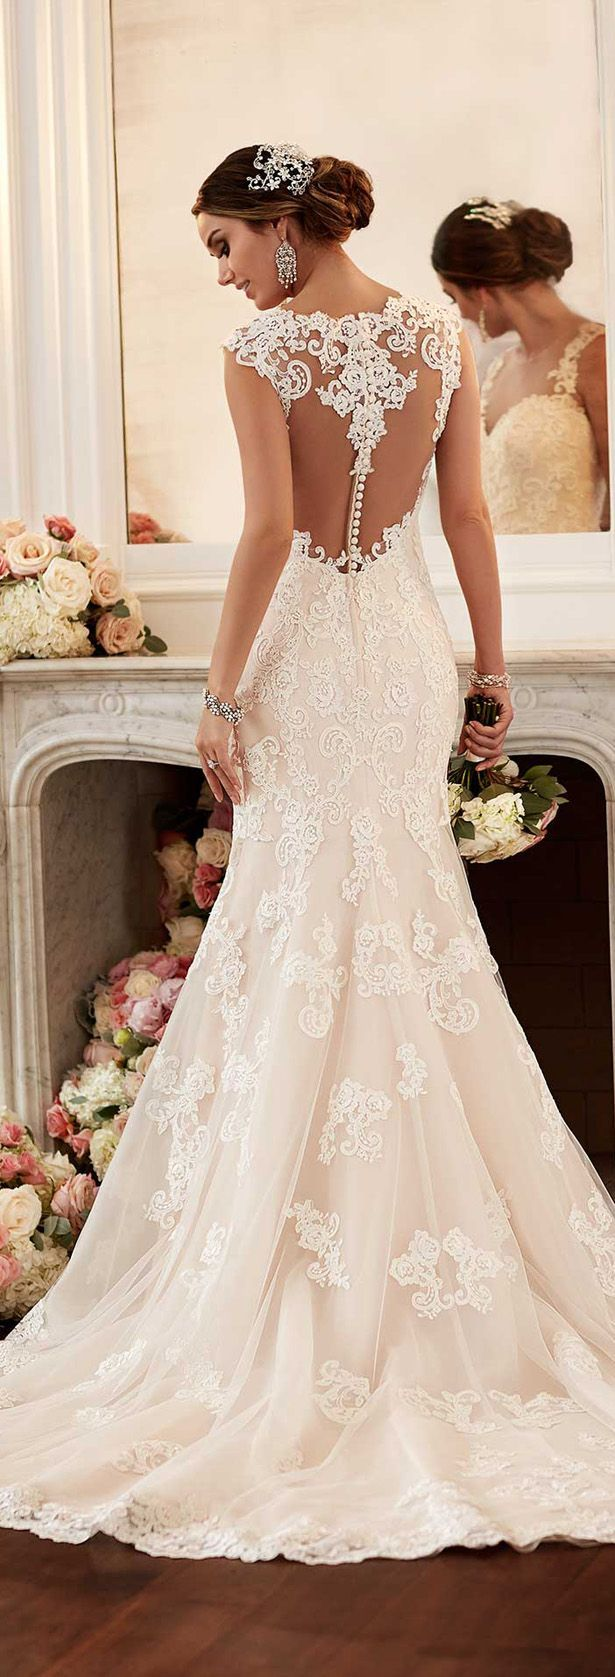 353 best wedding dresses images on pinterest bride lace stella york spring 2016 bridal collection ombrellifo Choice Image